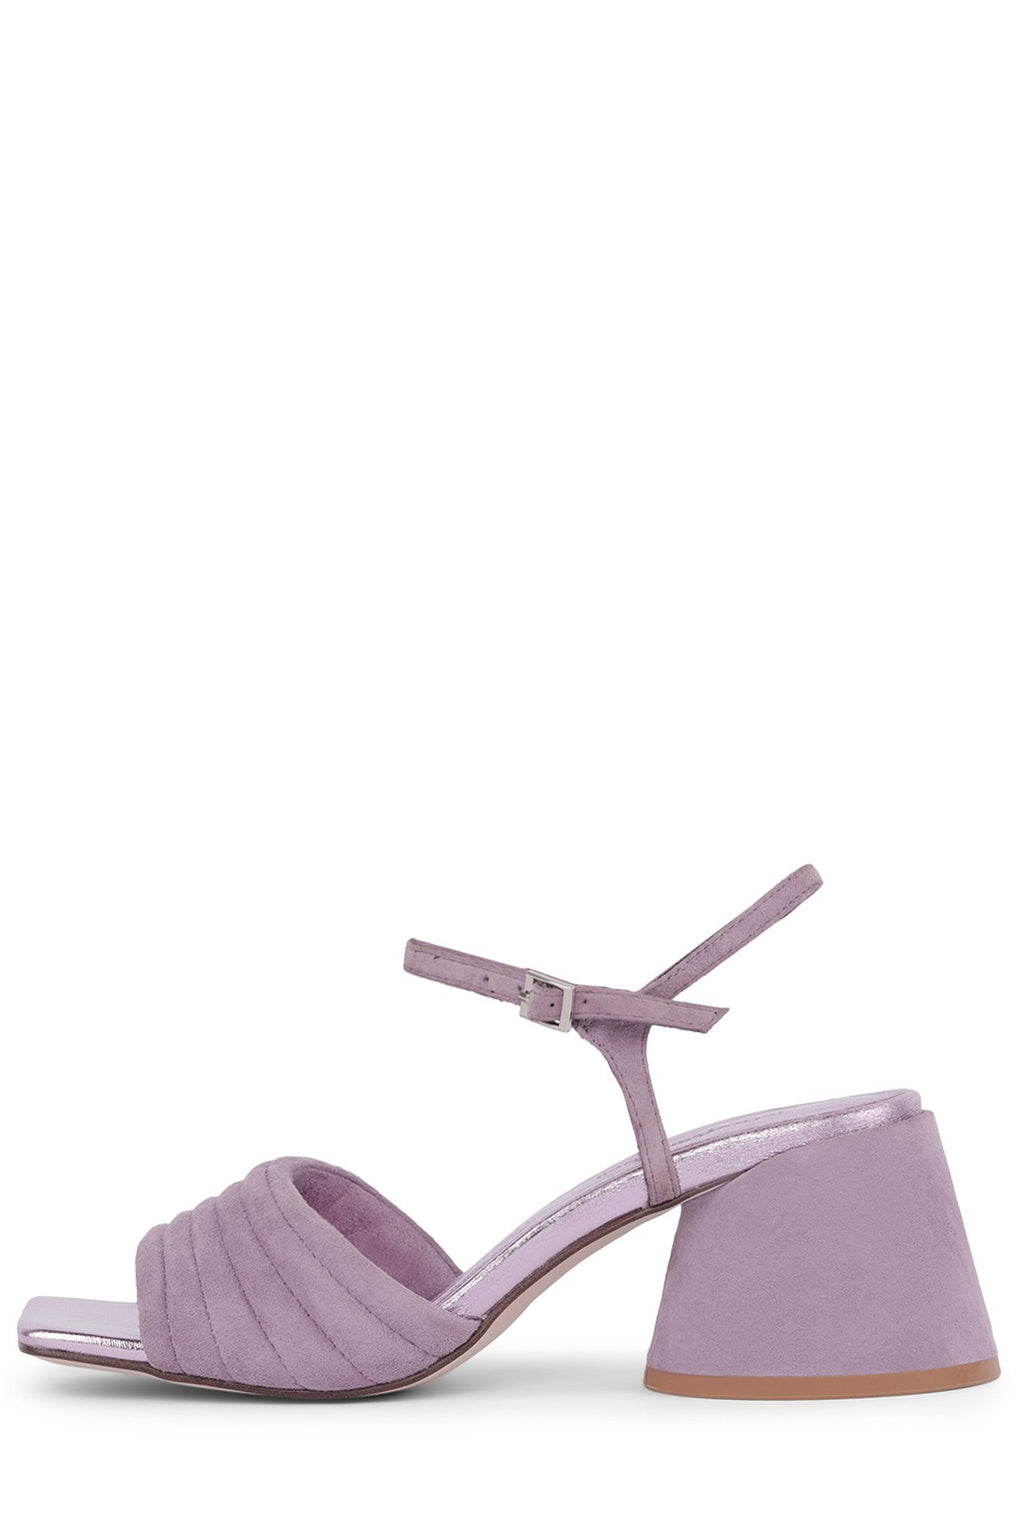 VERRA Heeled Sandal YYH Lilac Metallic Suede Combo 6